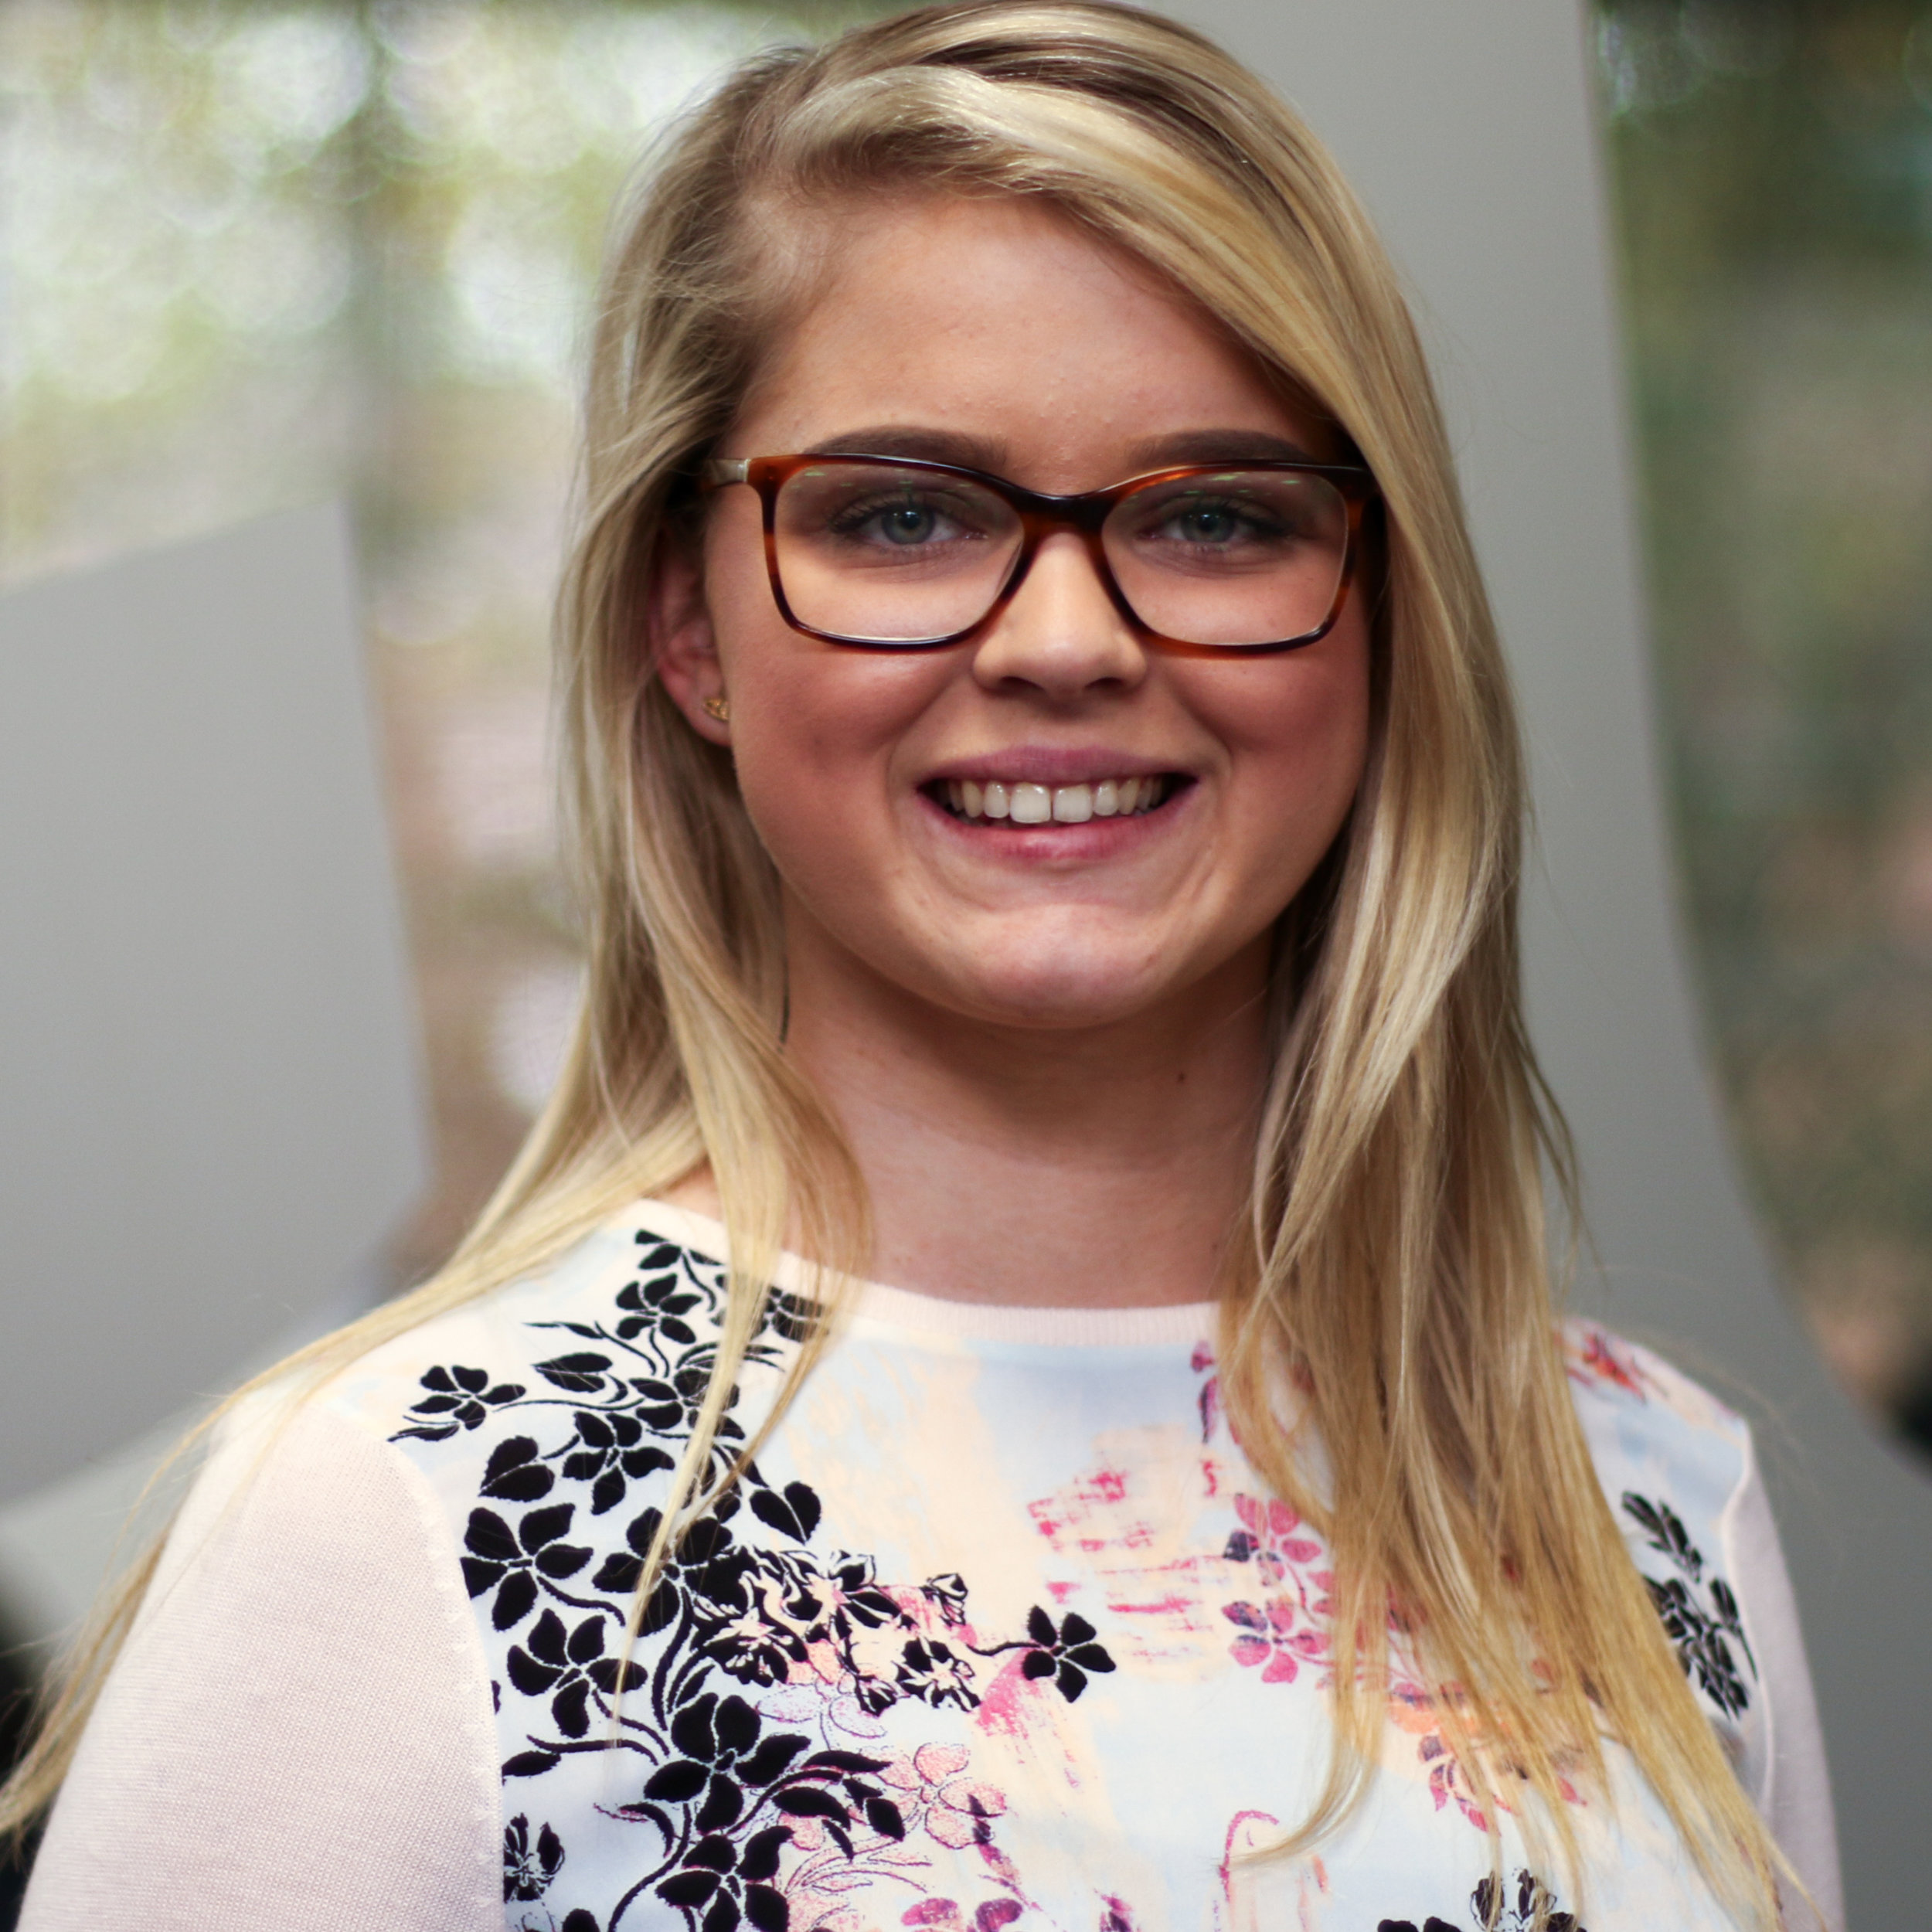 Lois Simon, Softcat   Lois works with schools to help drive their IT Strategy. Lois also manages the Public Sector Development Programme for the South Region which is a comprehensive graduate scheme, developing Account Executives into Enterprise Account Managers.